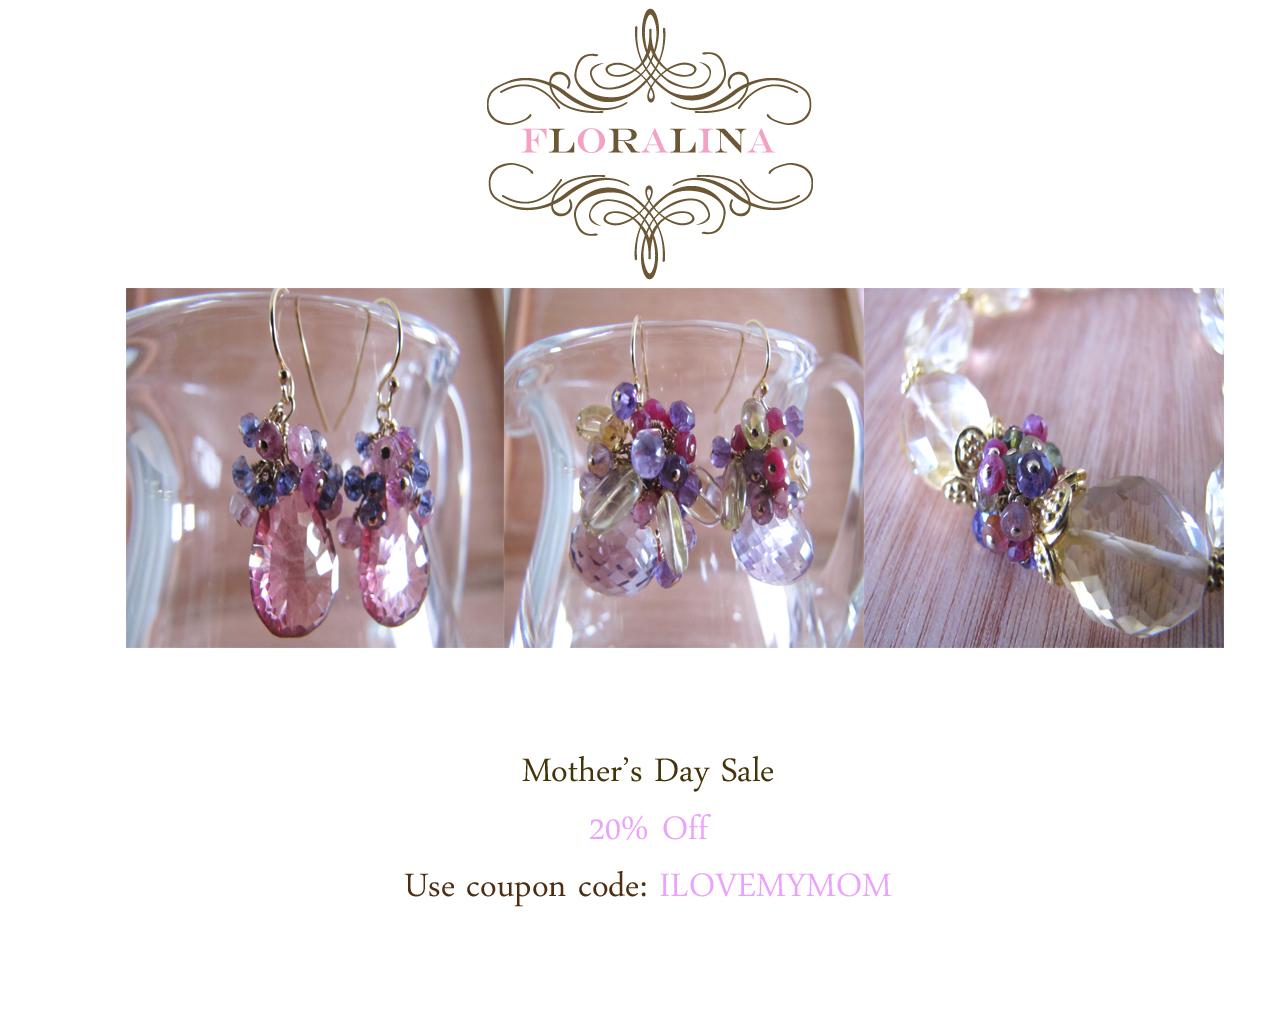 FLORALINA: Mother's Day Jewelry Gift Ideas